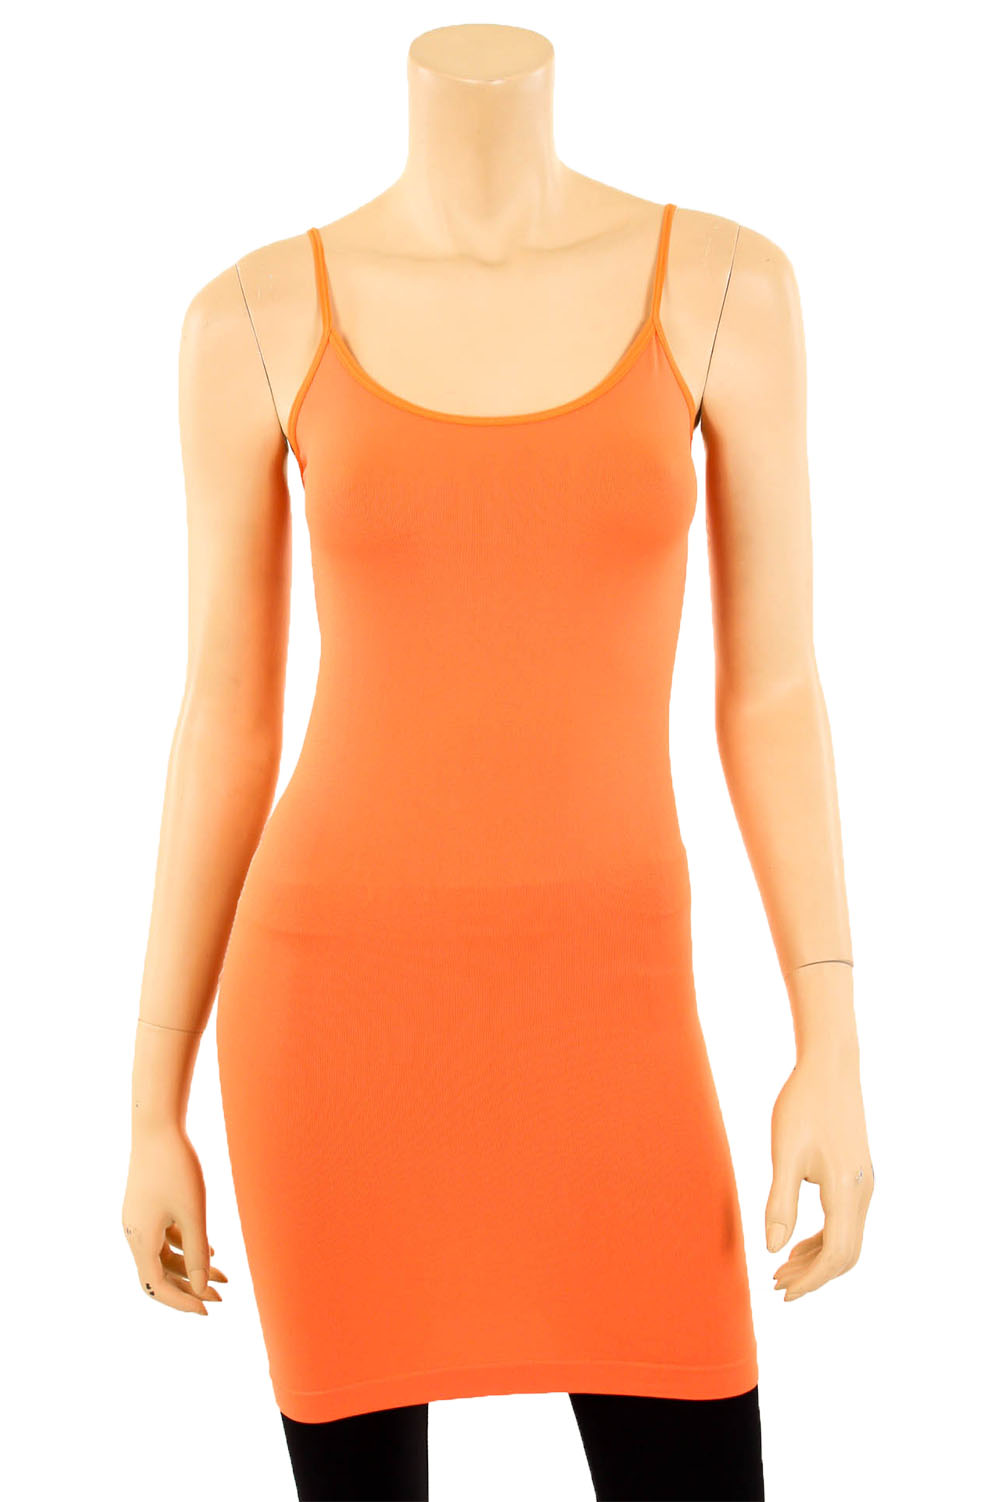 The Cami Girl is a company that sells Seamless Clothing made by specialtysports.gaing Nikibiki Camis. All tops are made in the USA. Products are all seamless and extra long ready to cover the 3